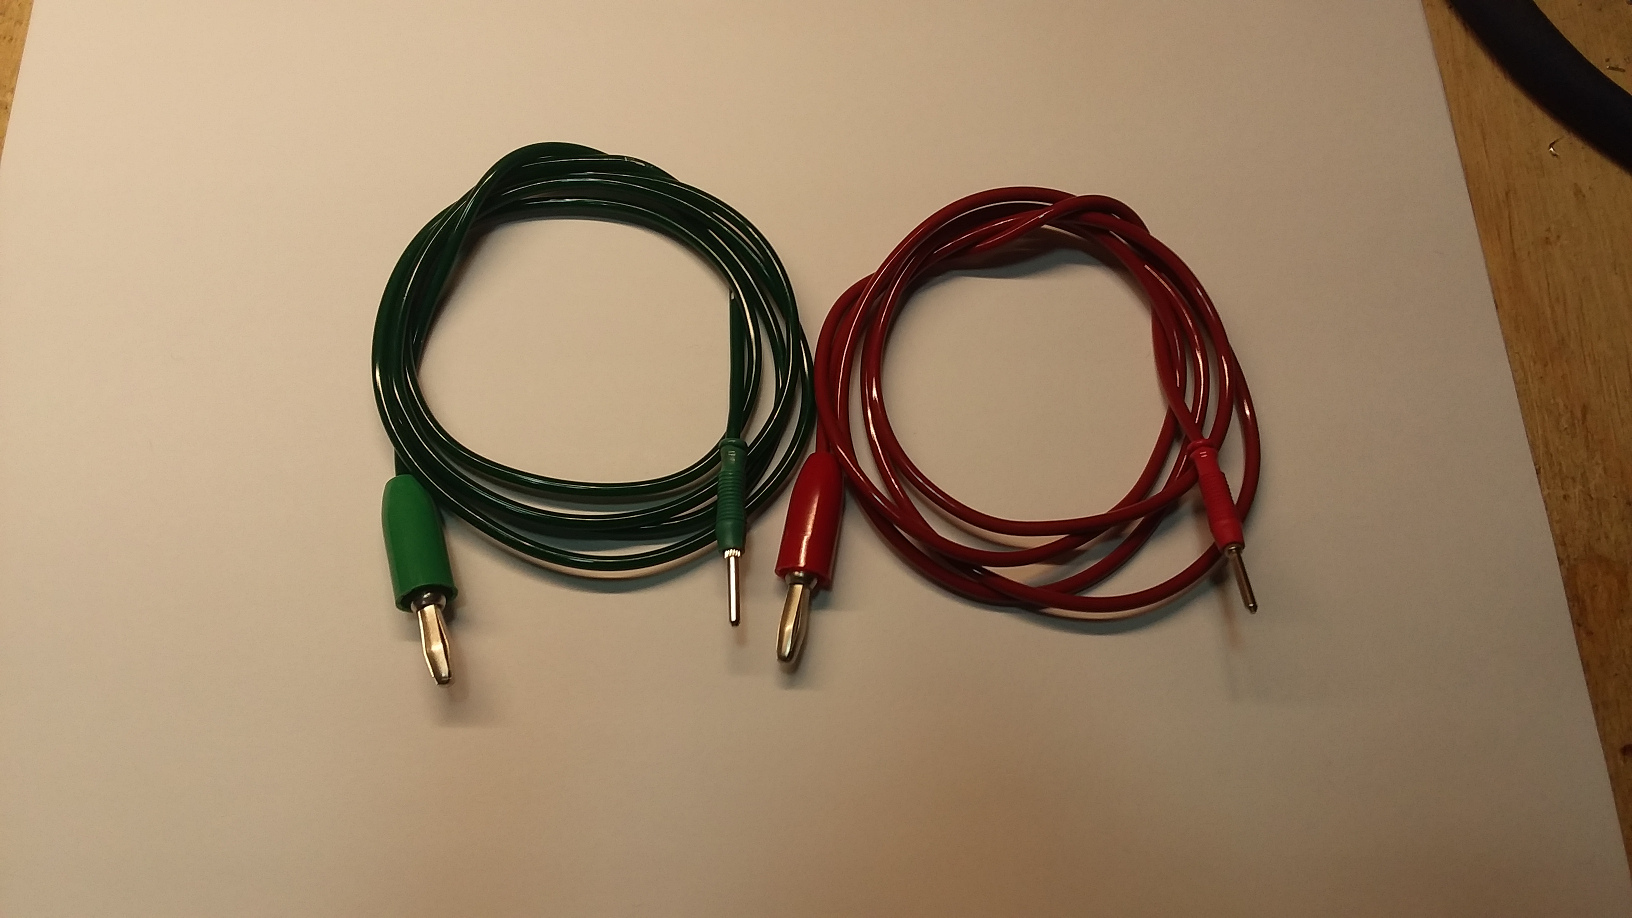 2mm pin type wires, 39 inches long